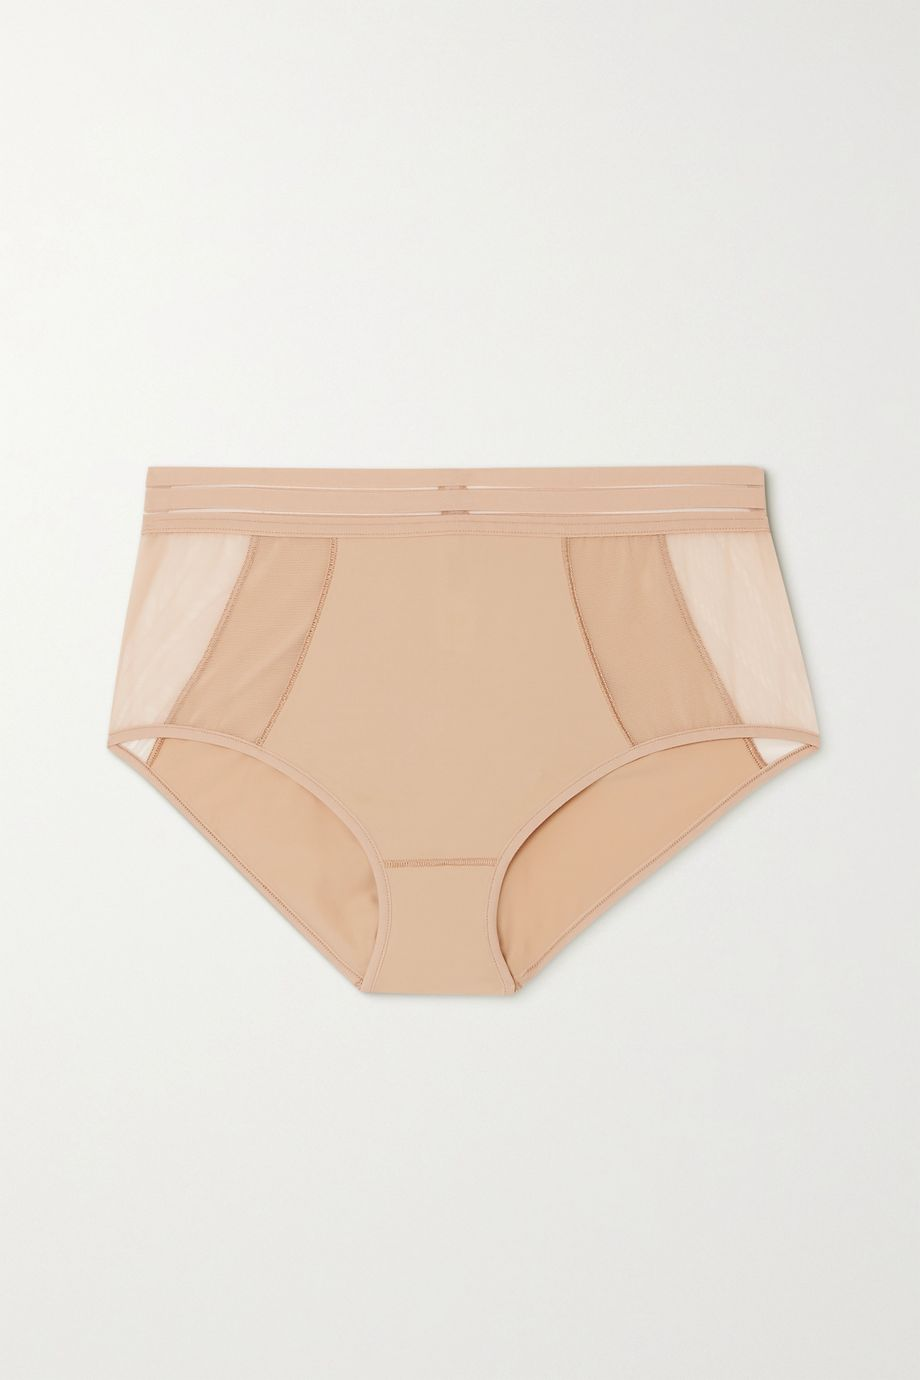 Maison Lejaby Nufit stretch-jersey and tulle briefs